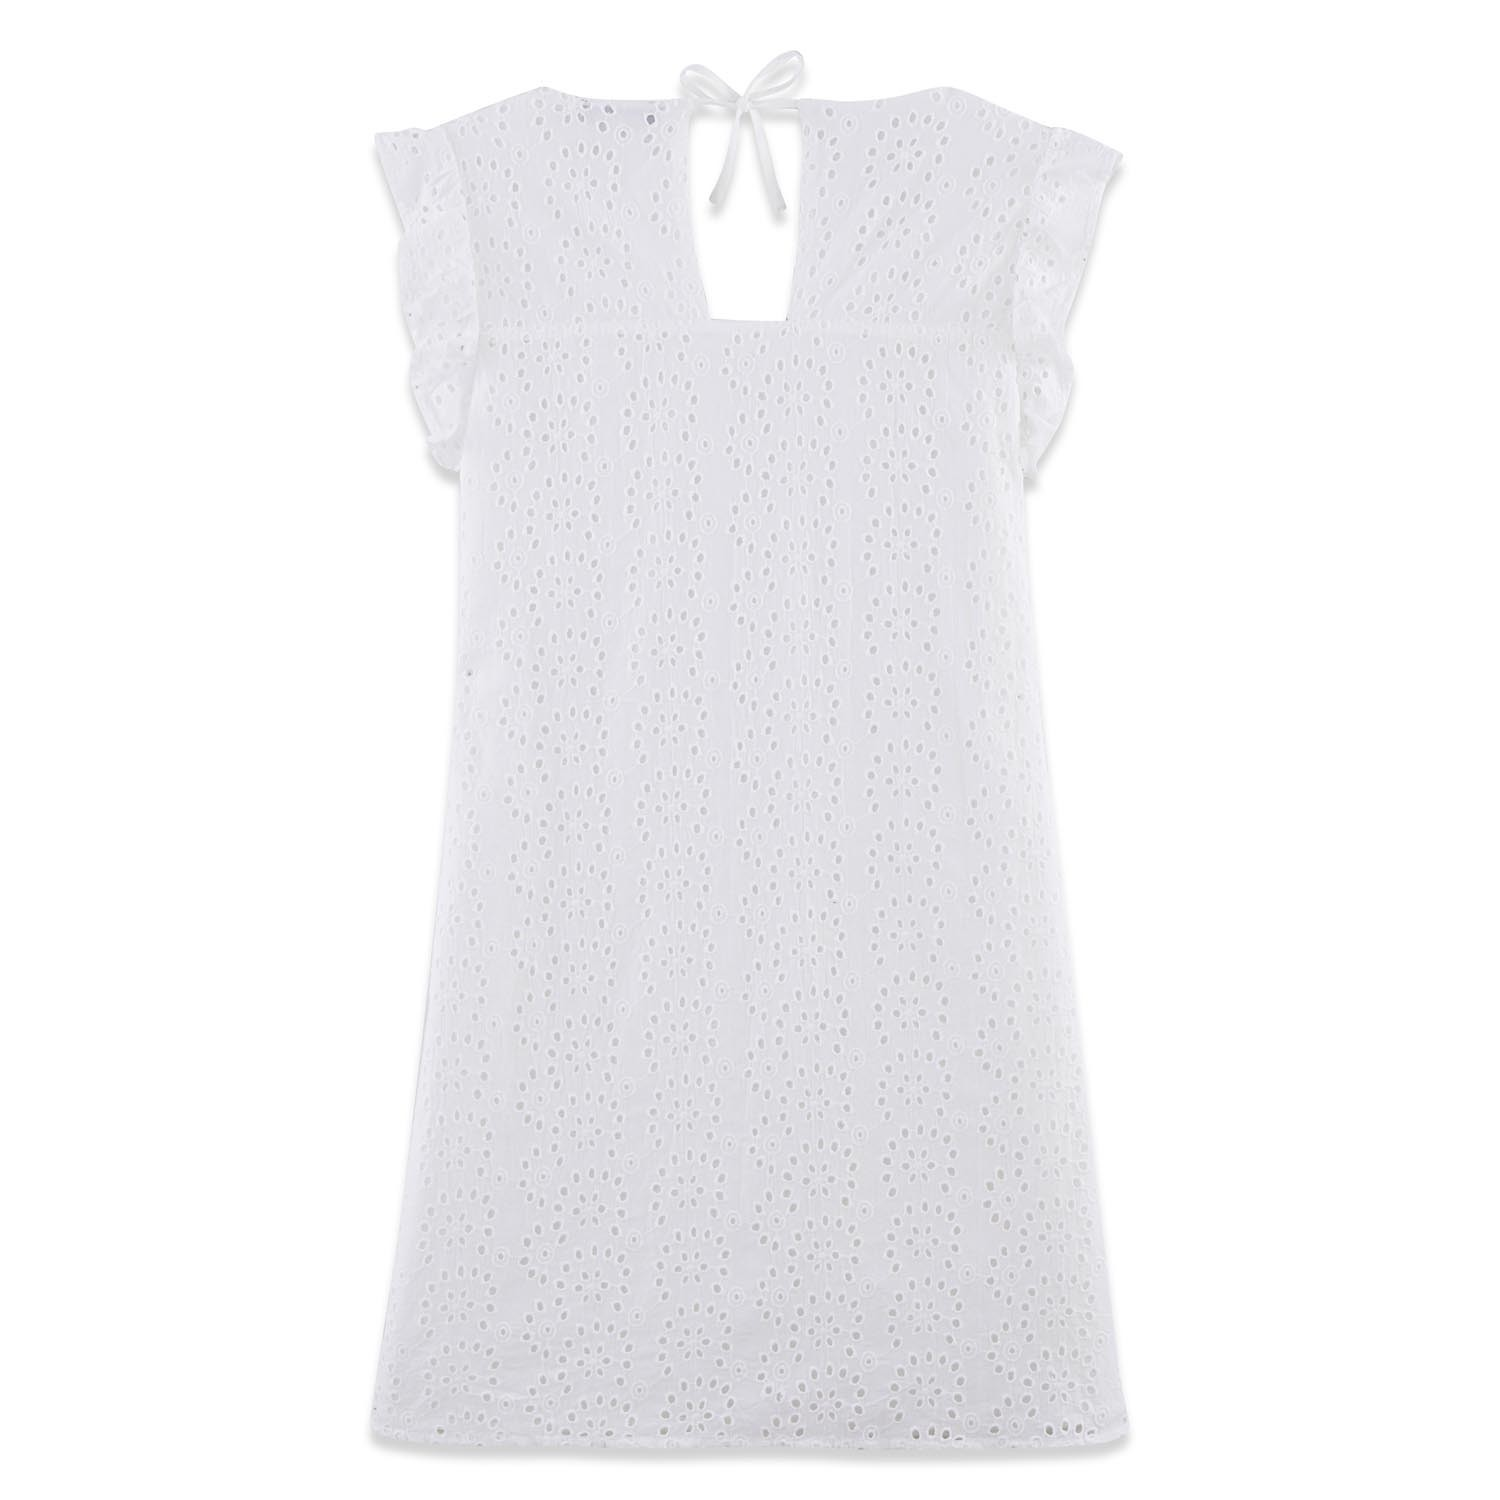 Buy Robe Femme 100 Coton Broderie Blanche Hollyrob Tbs